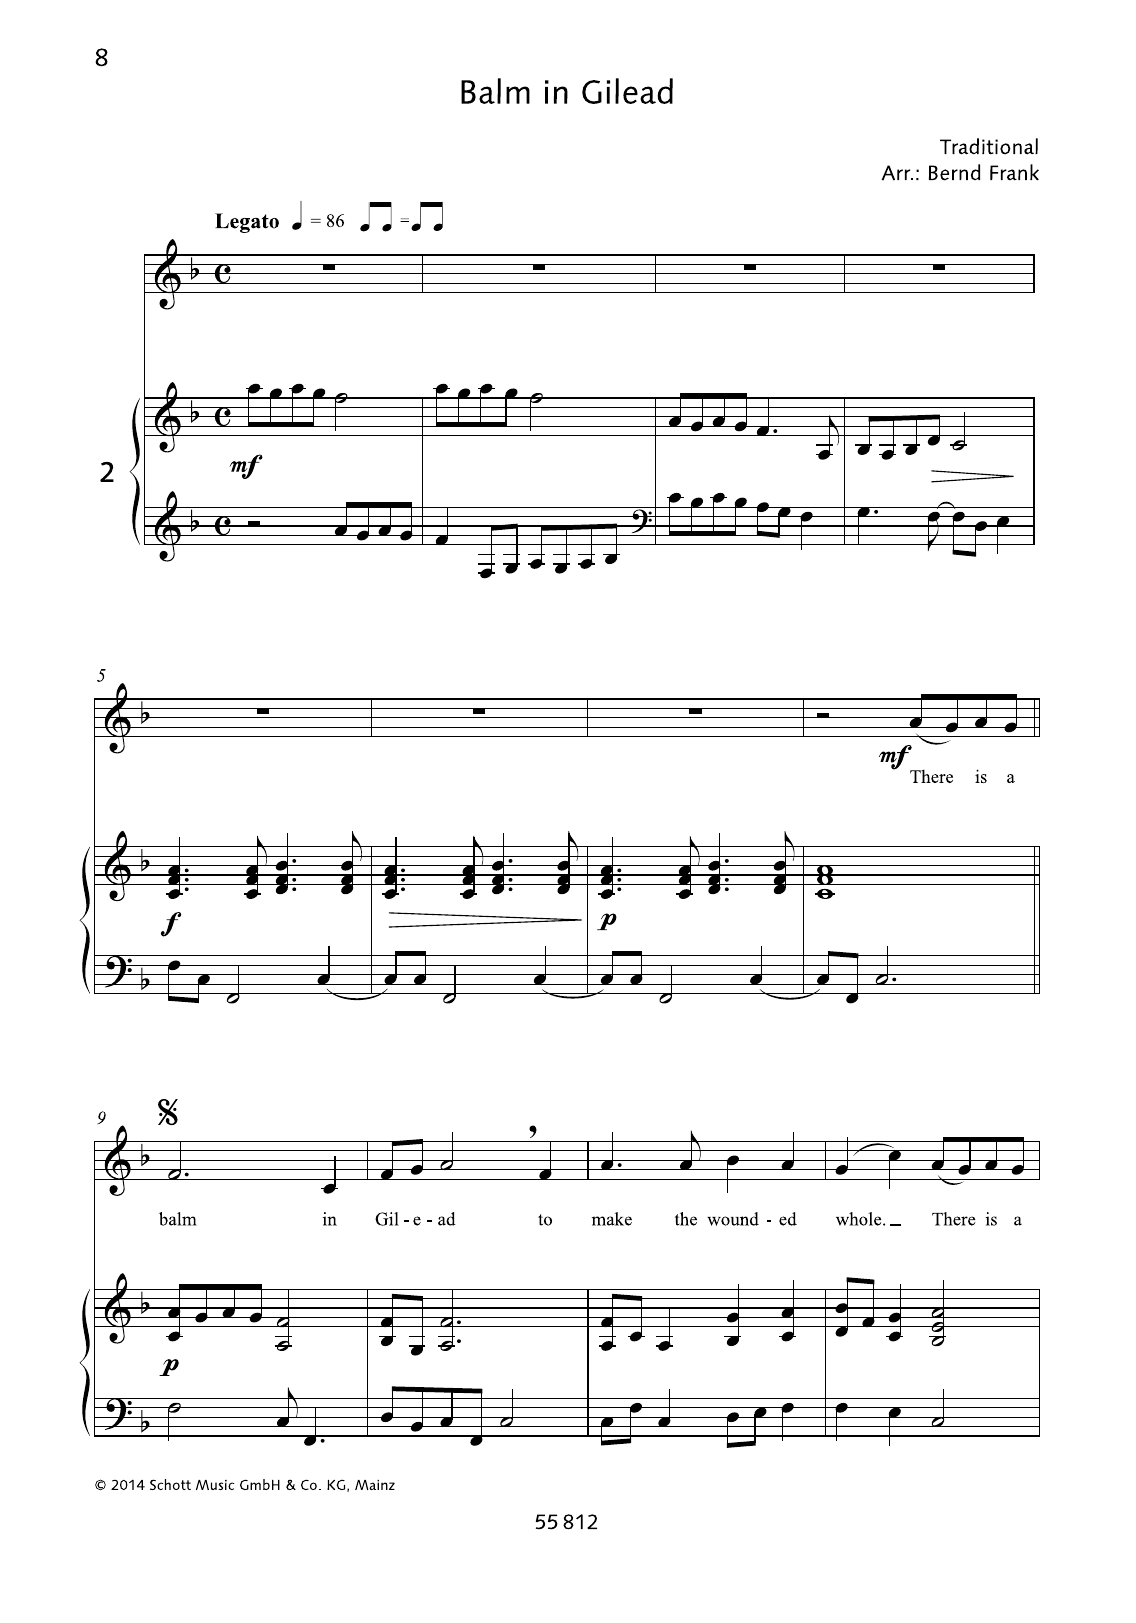 Bernd Frank Balm in Gilead sheet music notes and chords. Download Printable PDF.